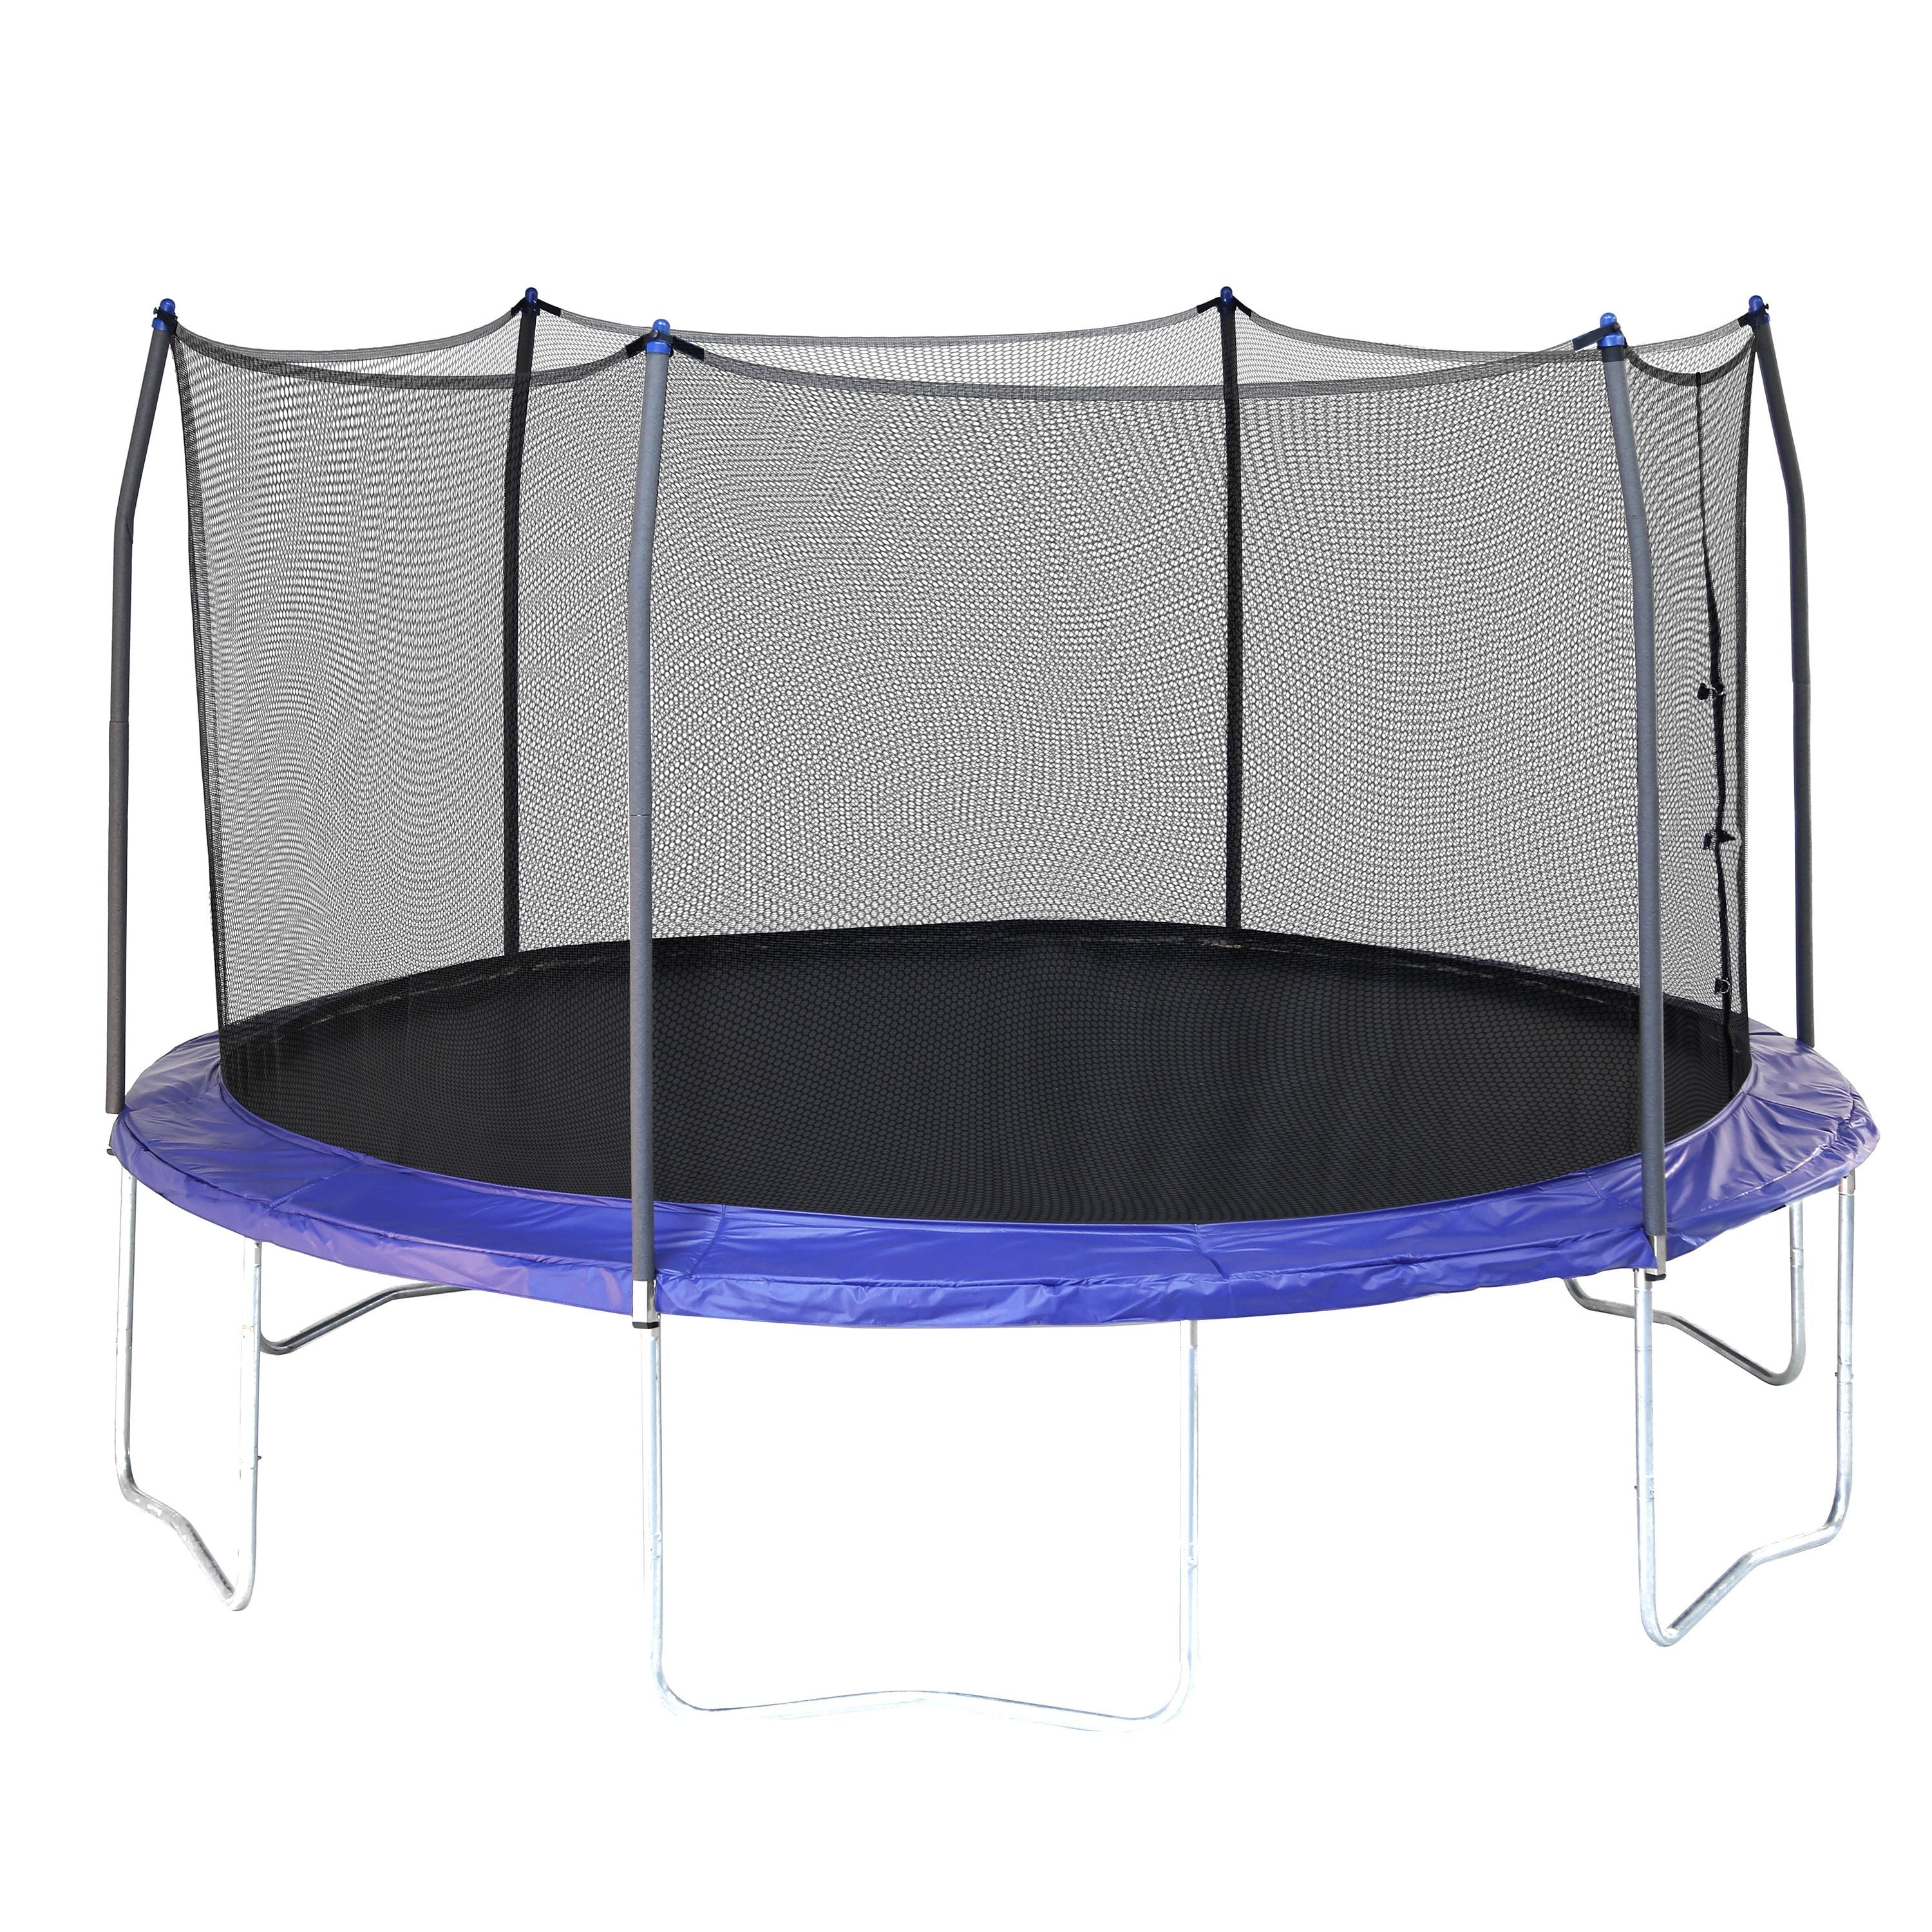 Top 12 best trampolines reviews for 2018 | Trampoline ...